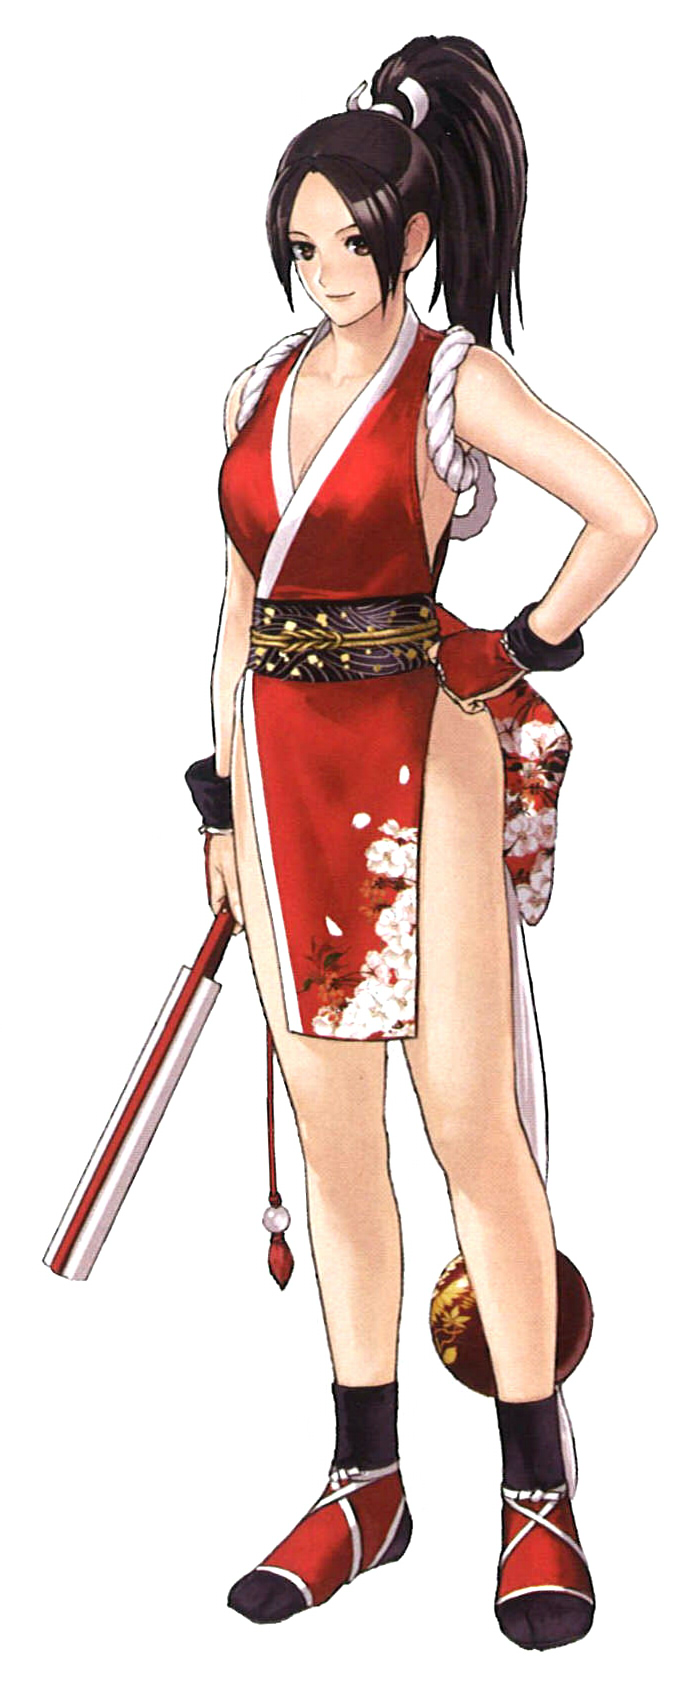 Think, that King of fighters mai shiranui excited too